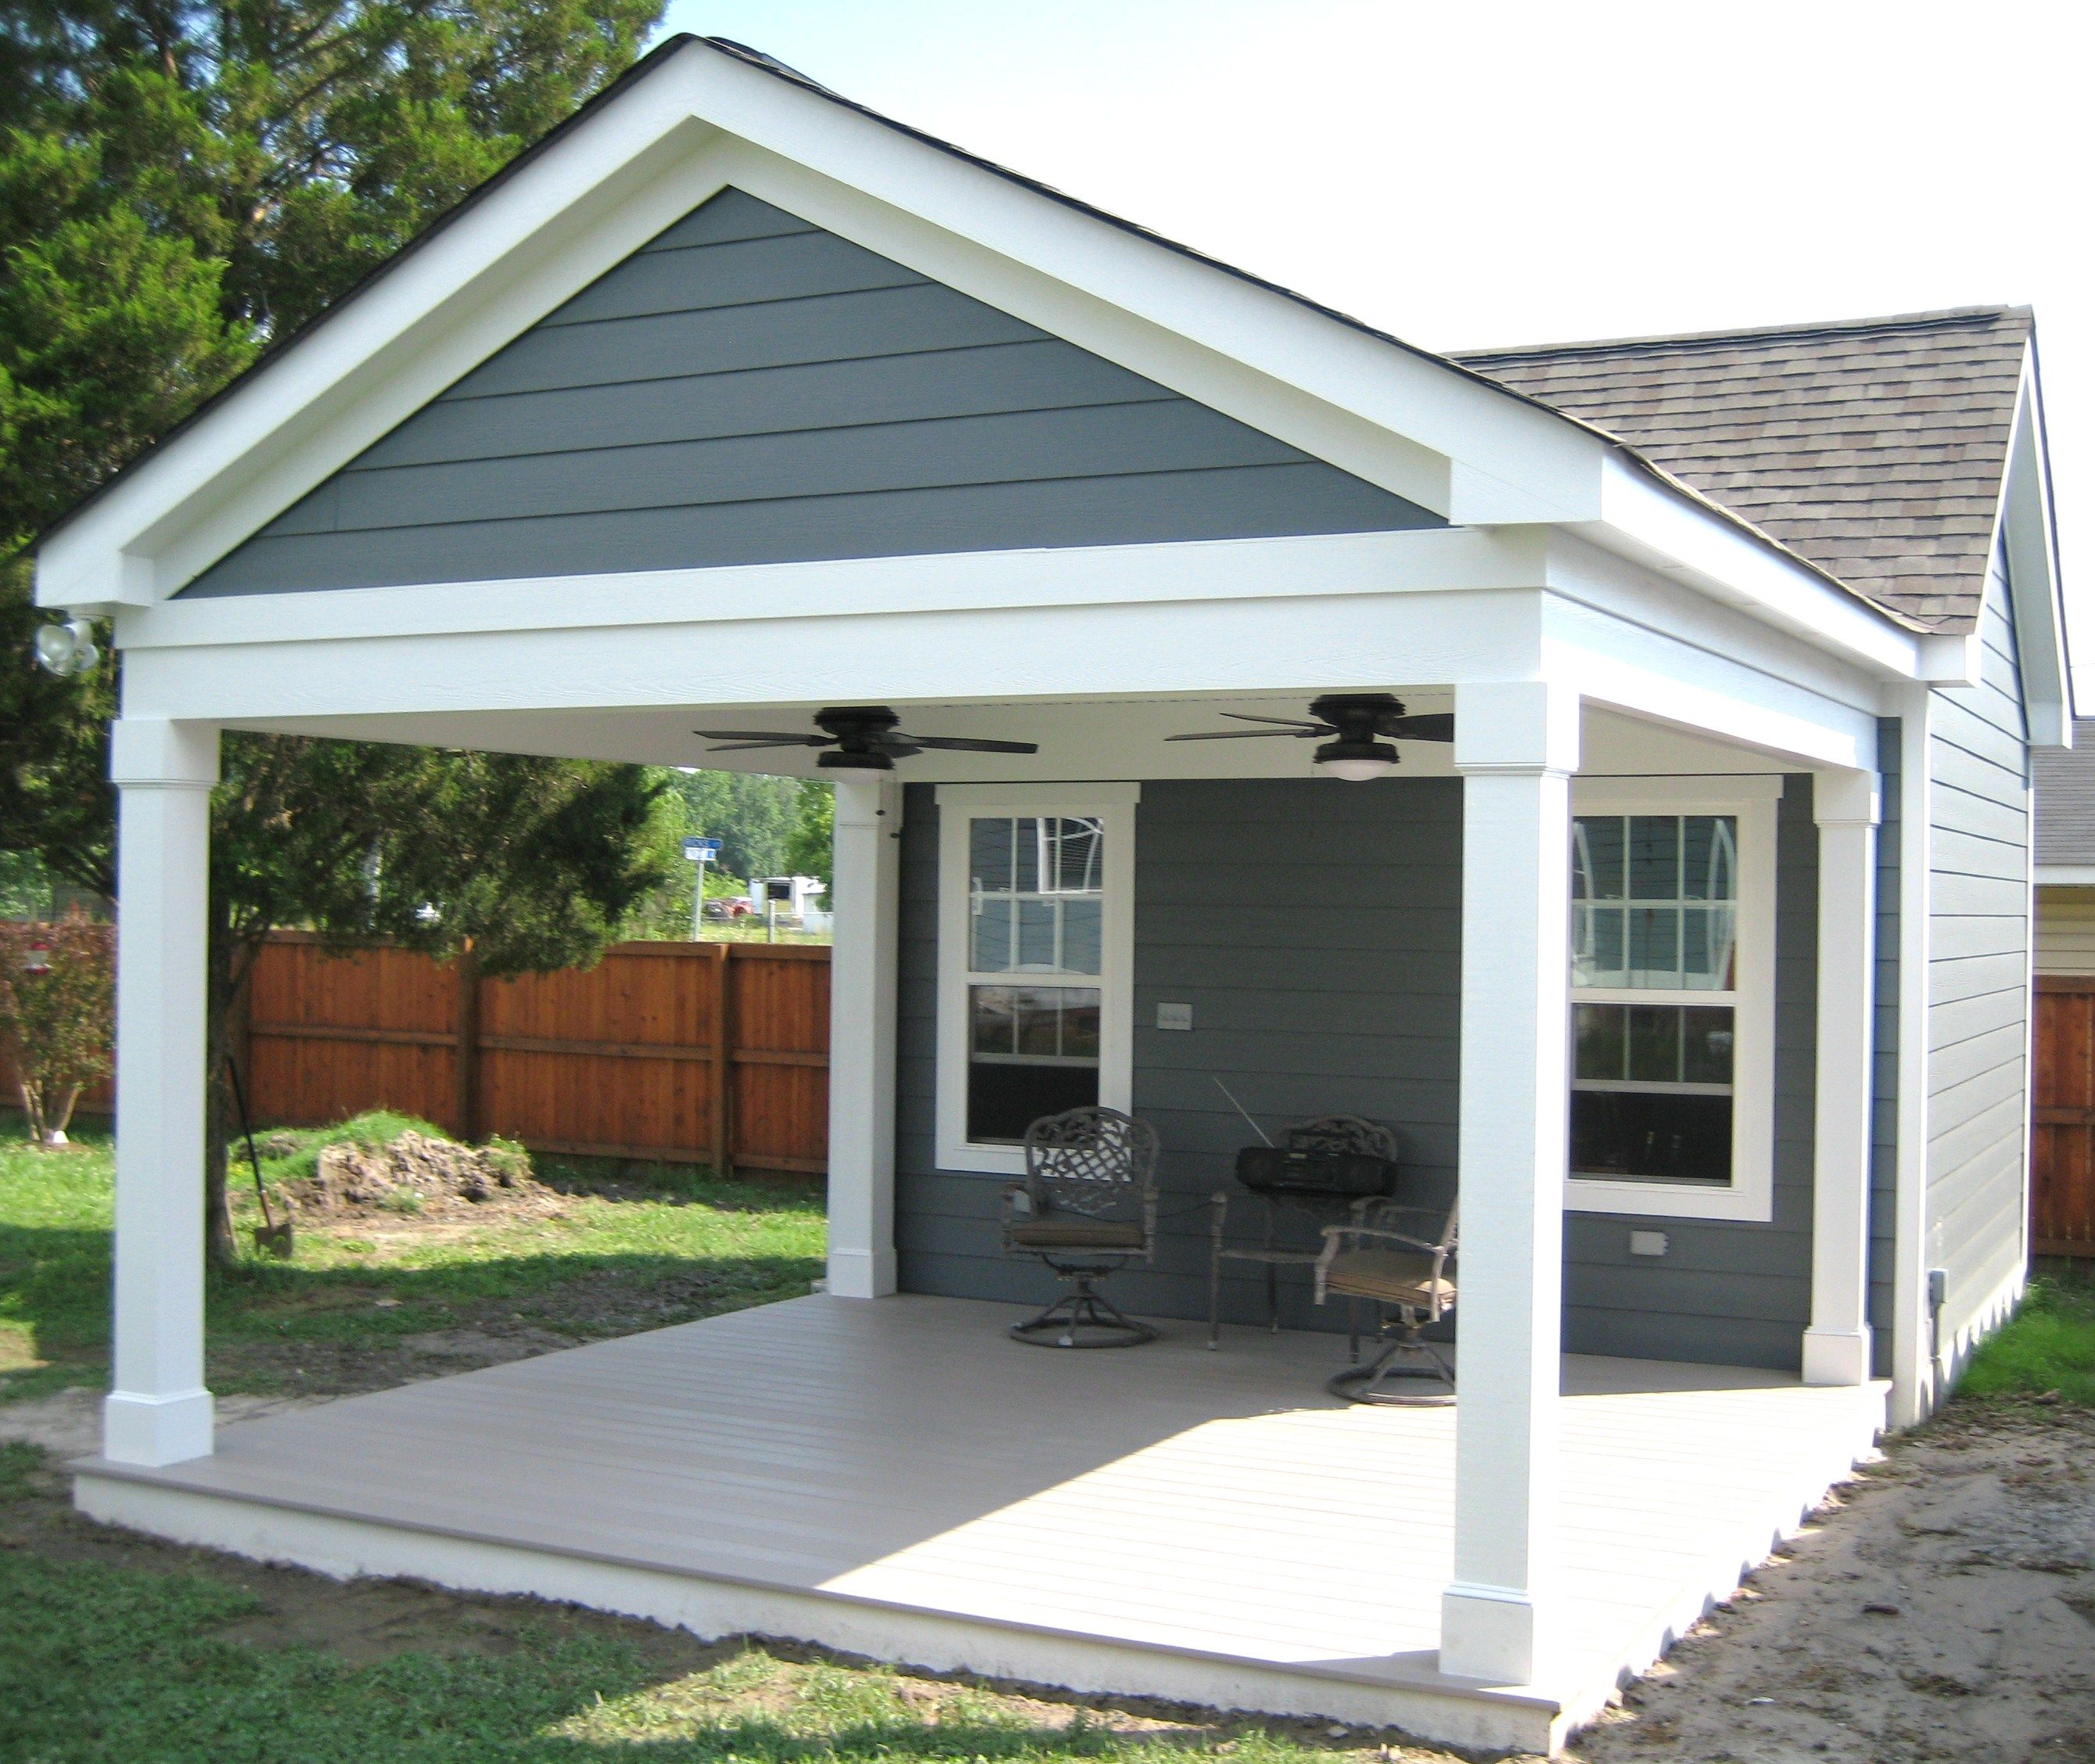 Garage with porch outbuilding with covered porch for Detached garage pool house